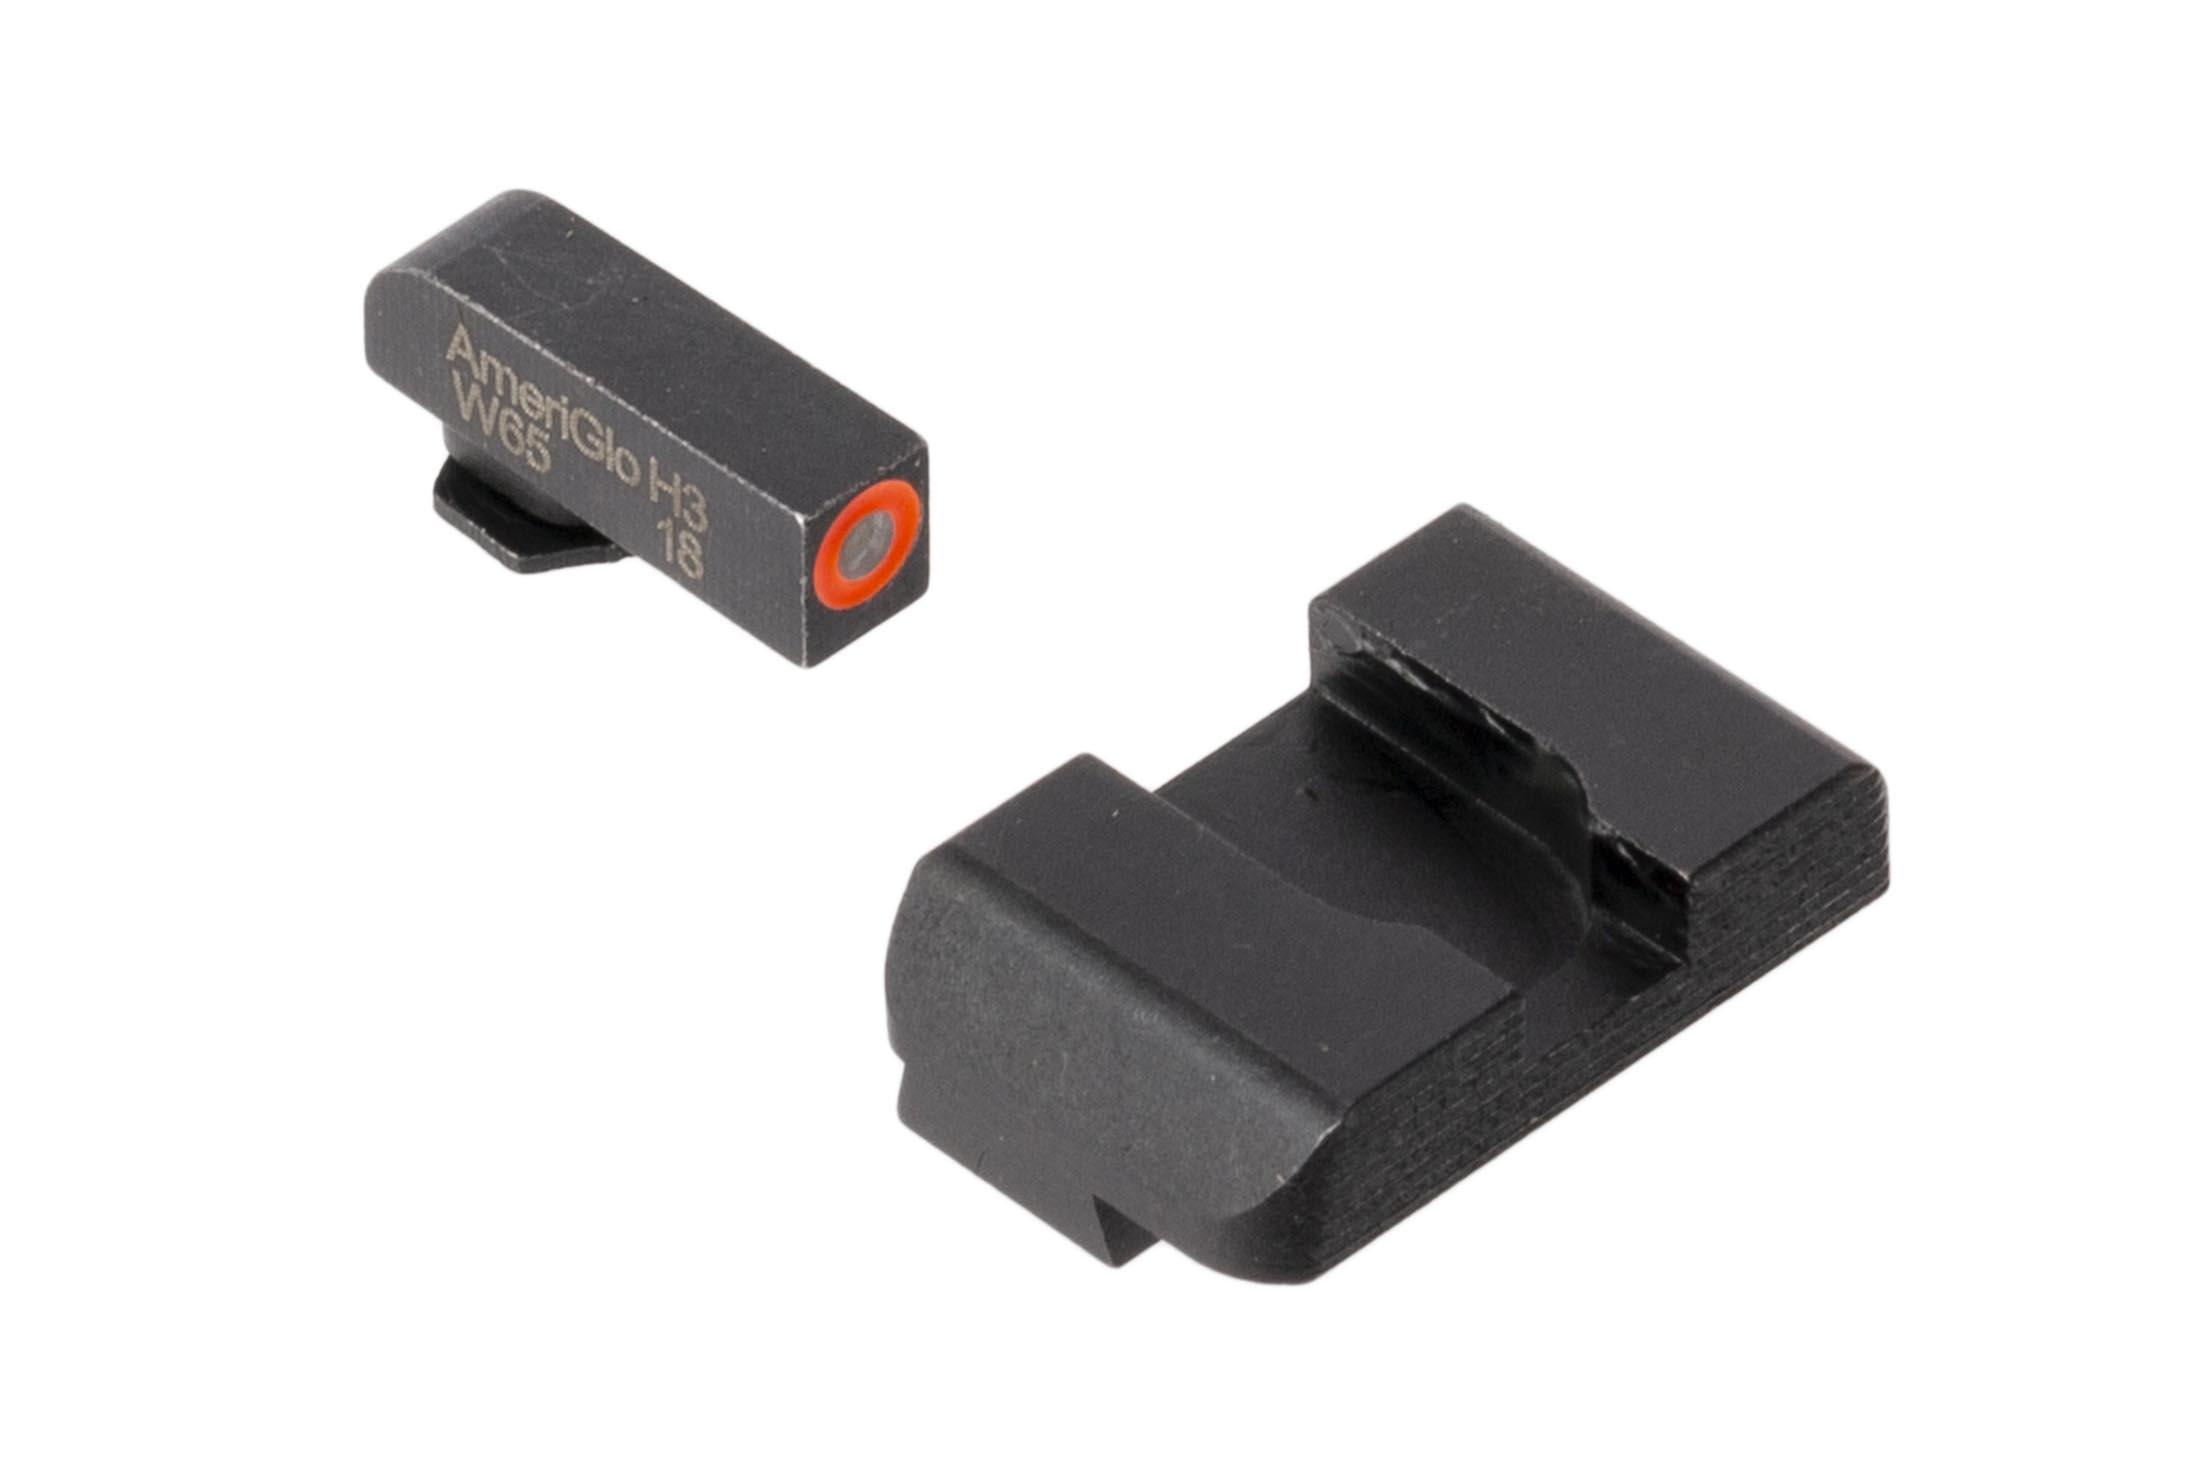 AmeriGlo Hackathorne sights for Glock handguns feature a high-contrast orange front sight with blacked out rear sight for fast acquisition